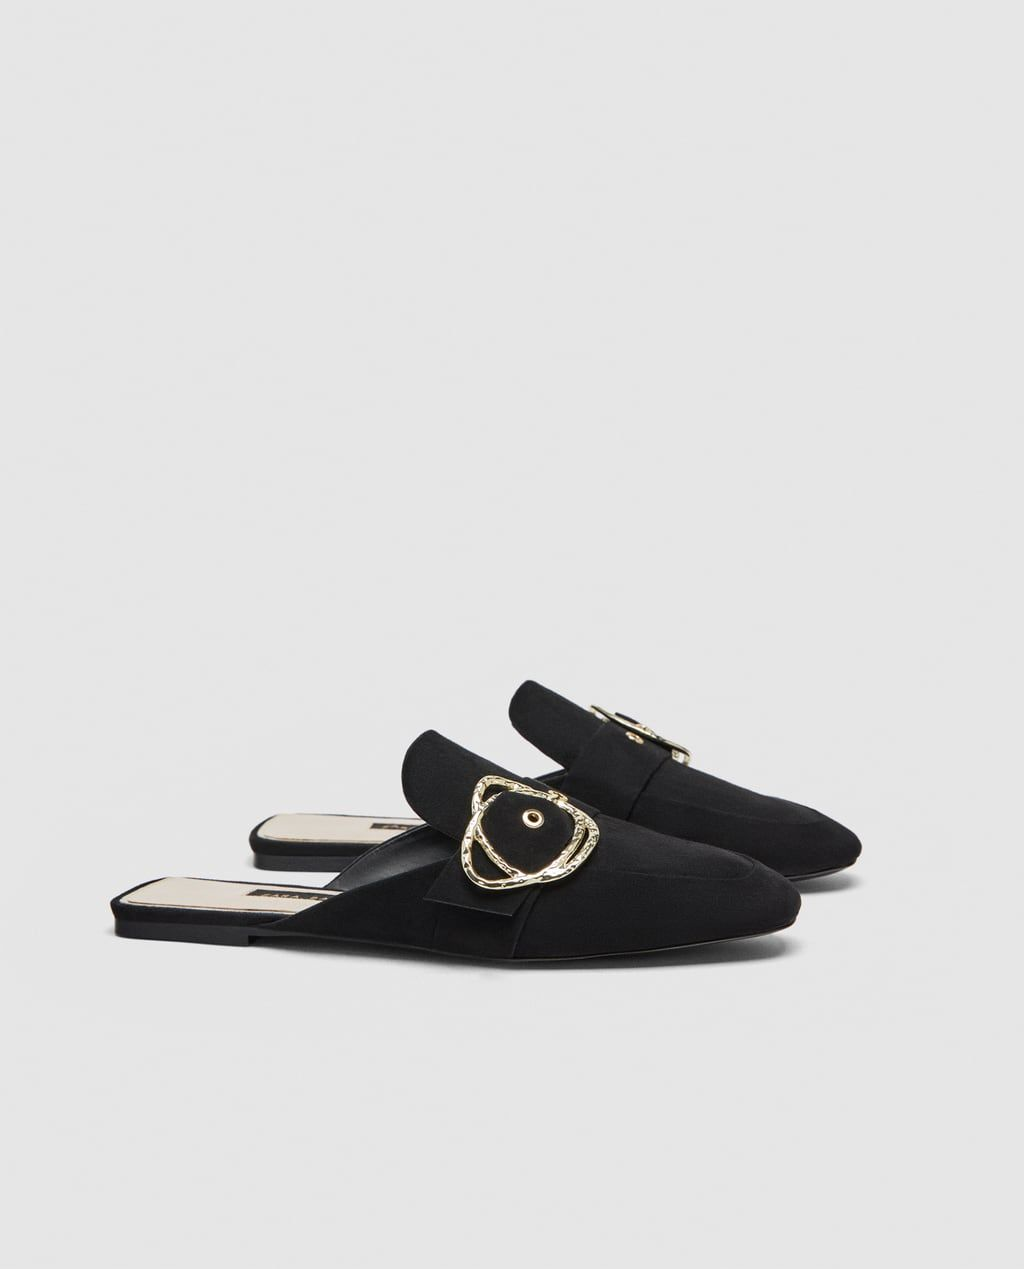 5d31c8c8987a5 Image 4 of FLAT MULES WITH BUCKLE DETAIL from Zara | Shoe.... GaLore ...